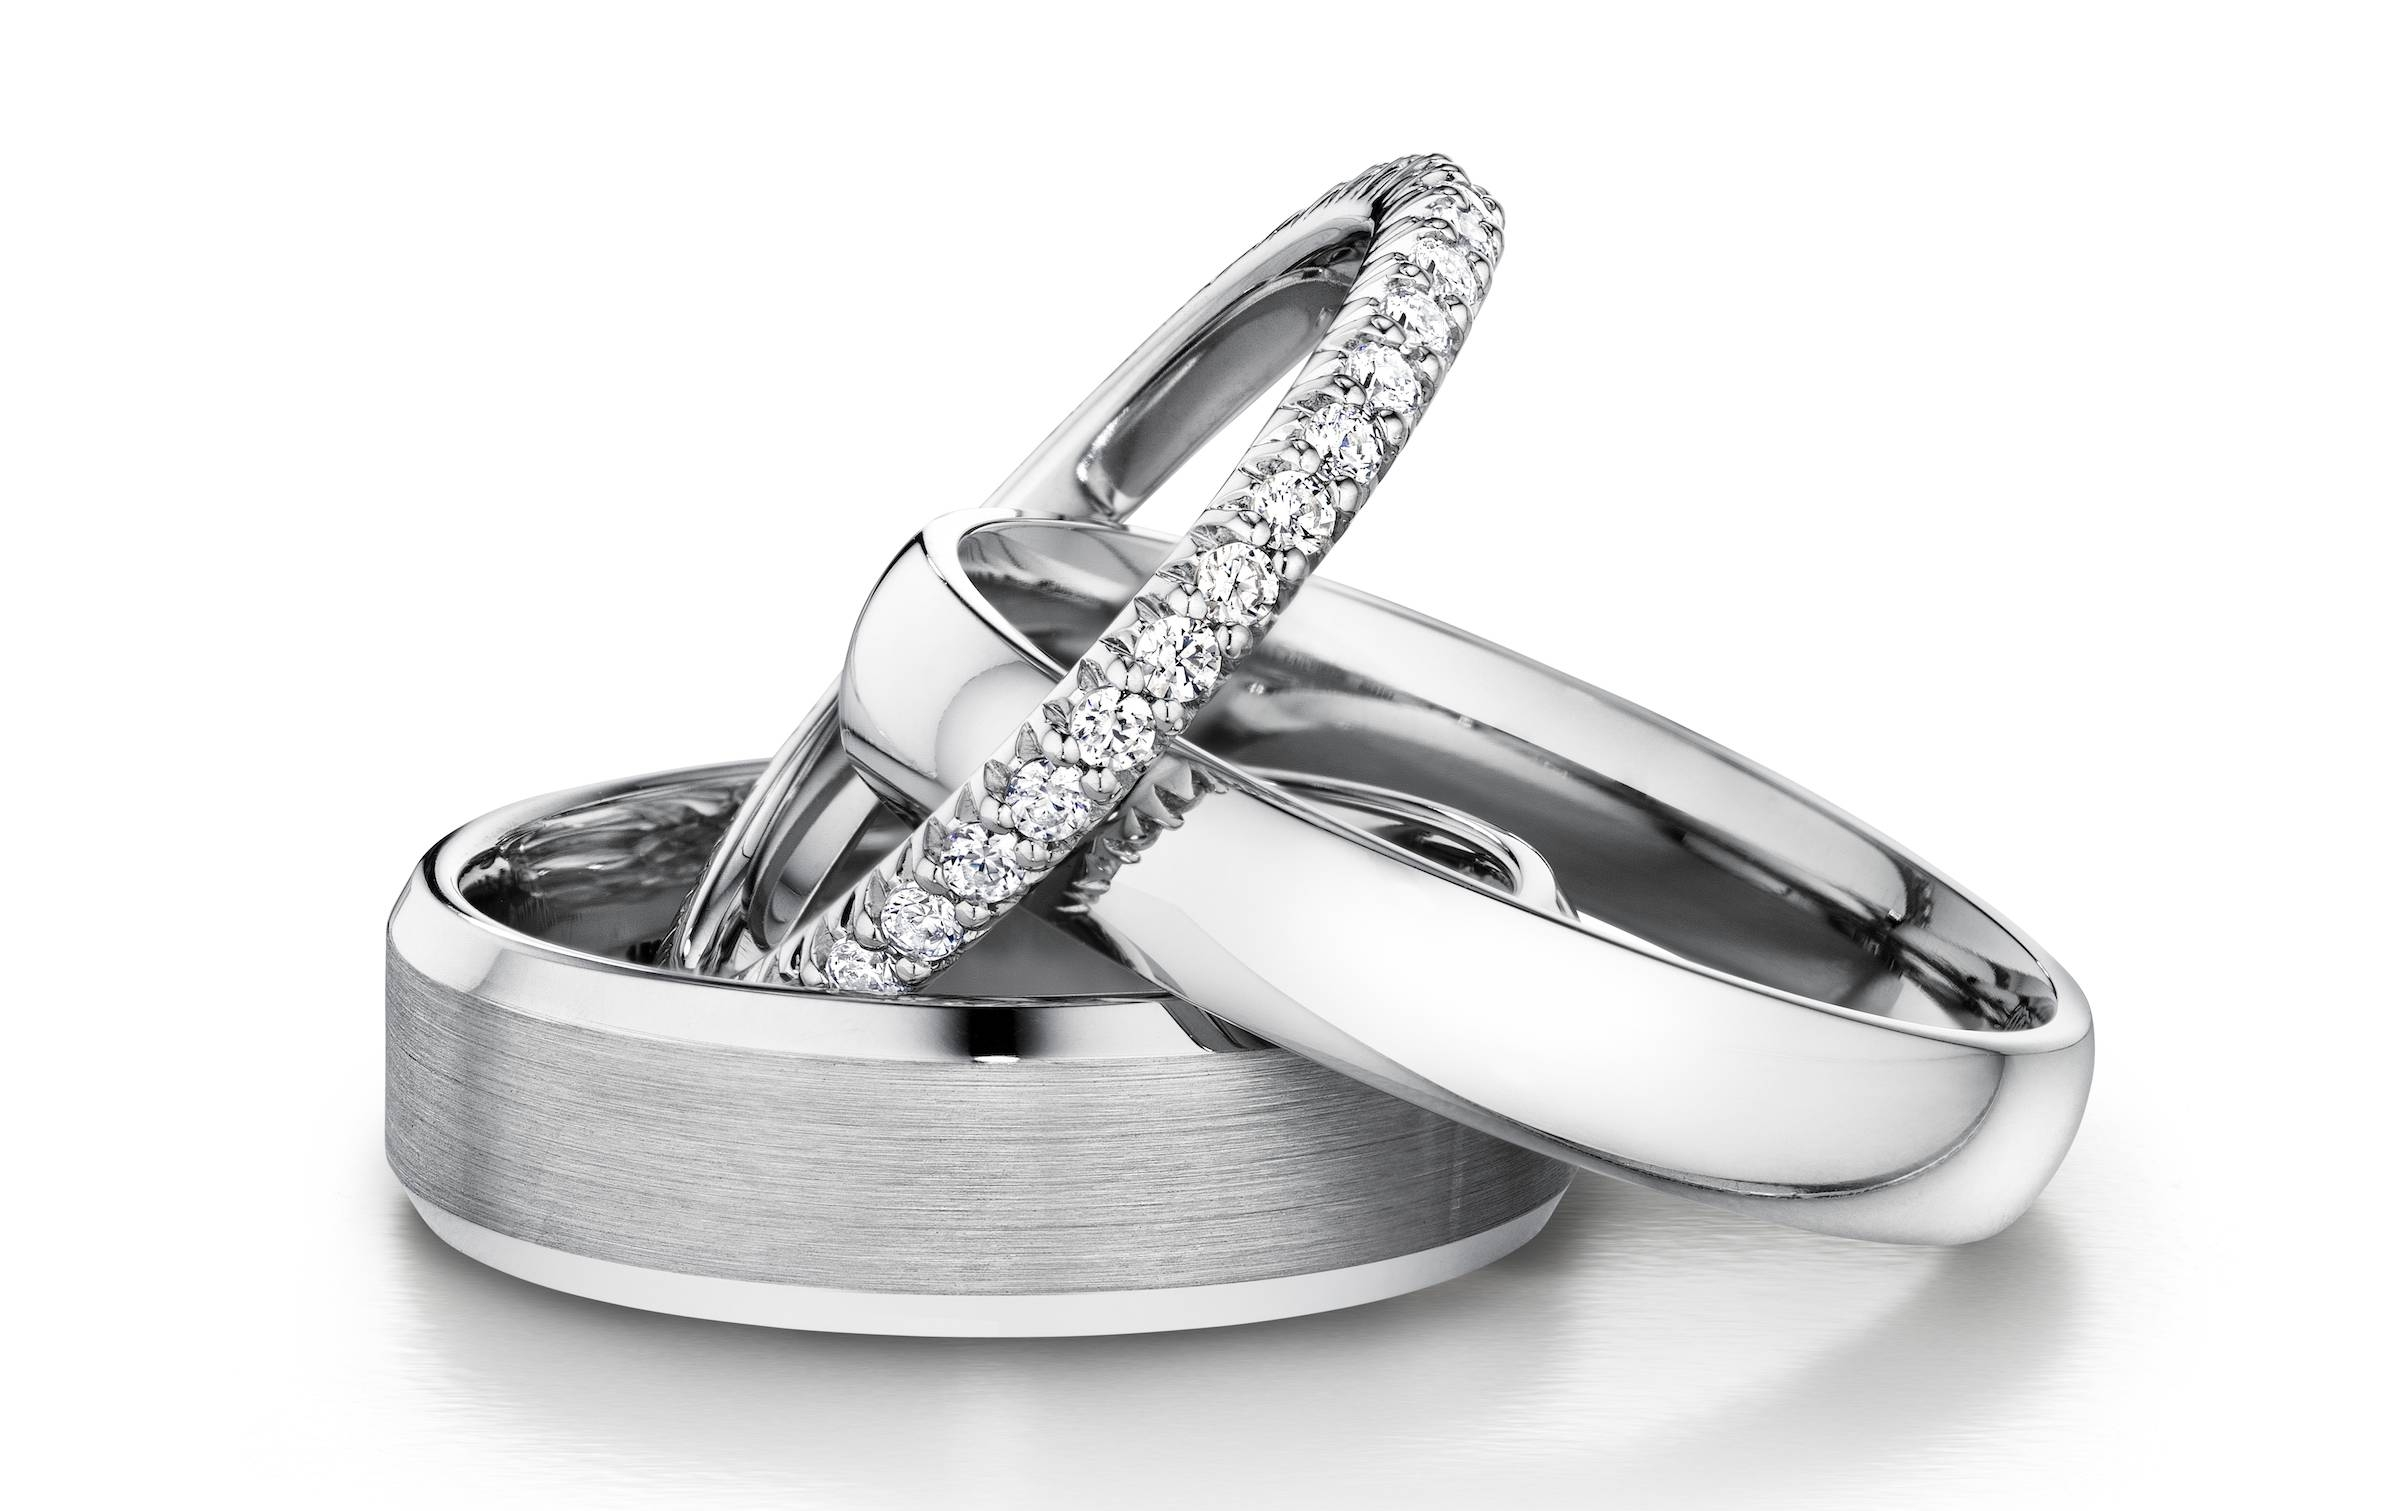 The Top 10 Most Popular Men's Wedding Bands Of 2015 | Ritani With Regard To Durable Wedding Bands For Men (View 13 of 15)